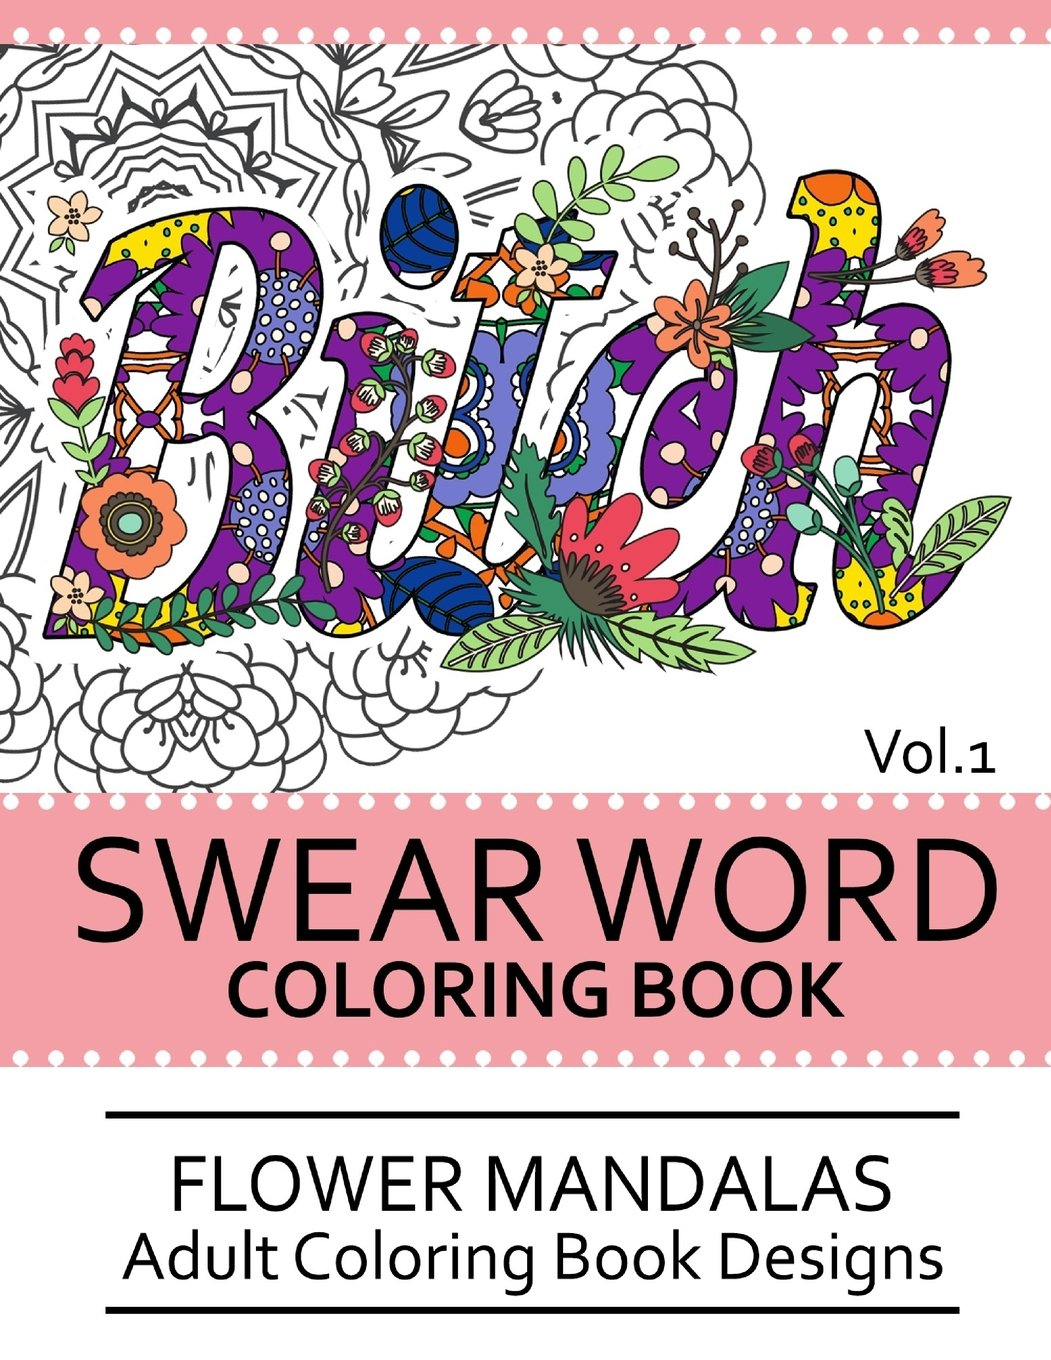 Swear word coloring book volume 1 - Amazon Com Swear Word Coloring Book Vol 1 Flower Mandalas Adult Coloring Book Designs Volume 1 9781539458777 Darkhead Books